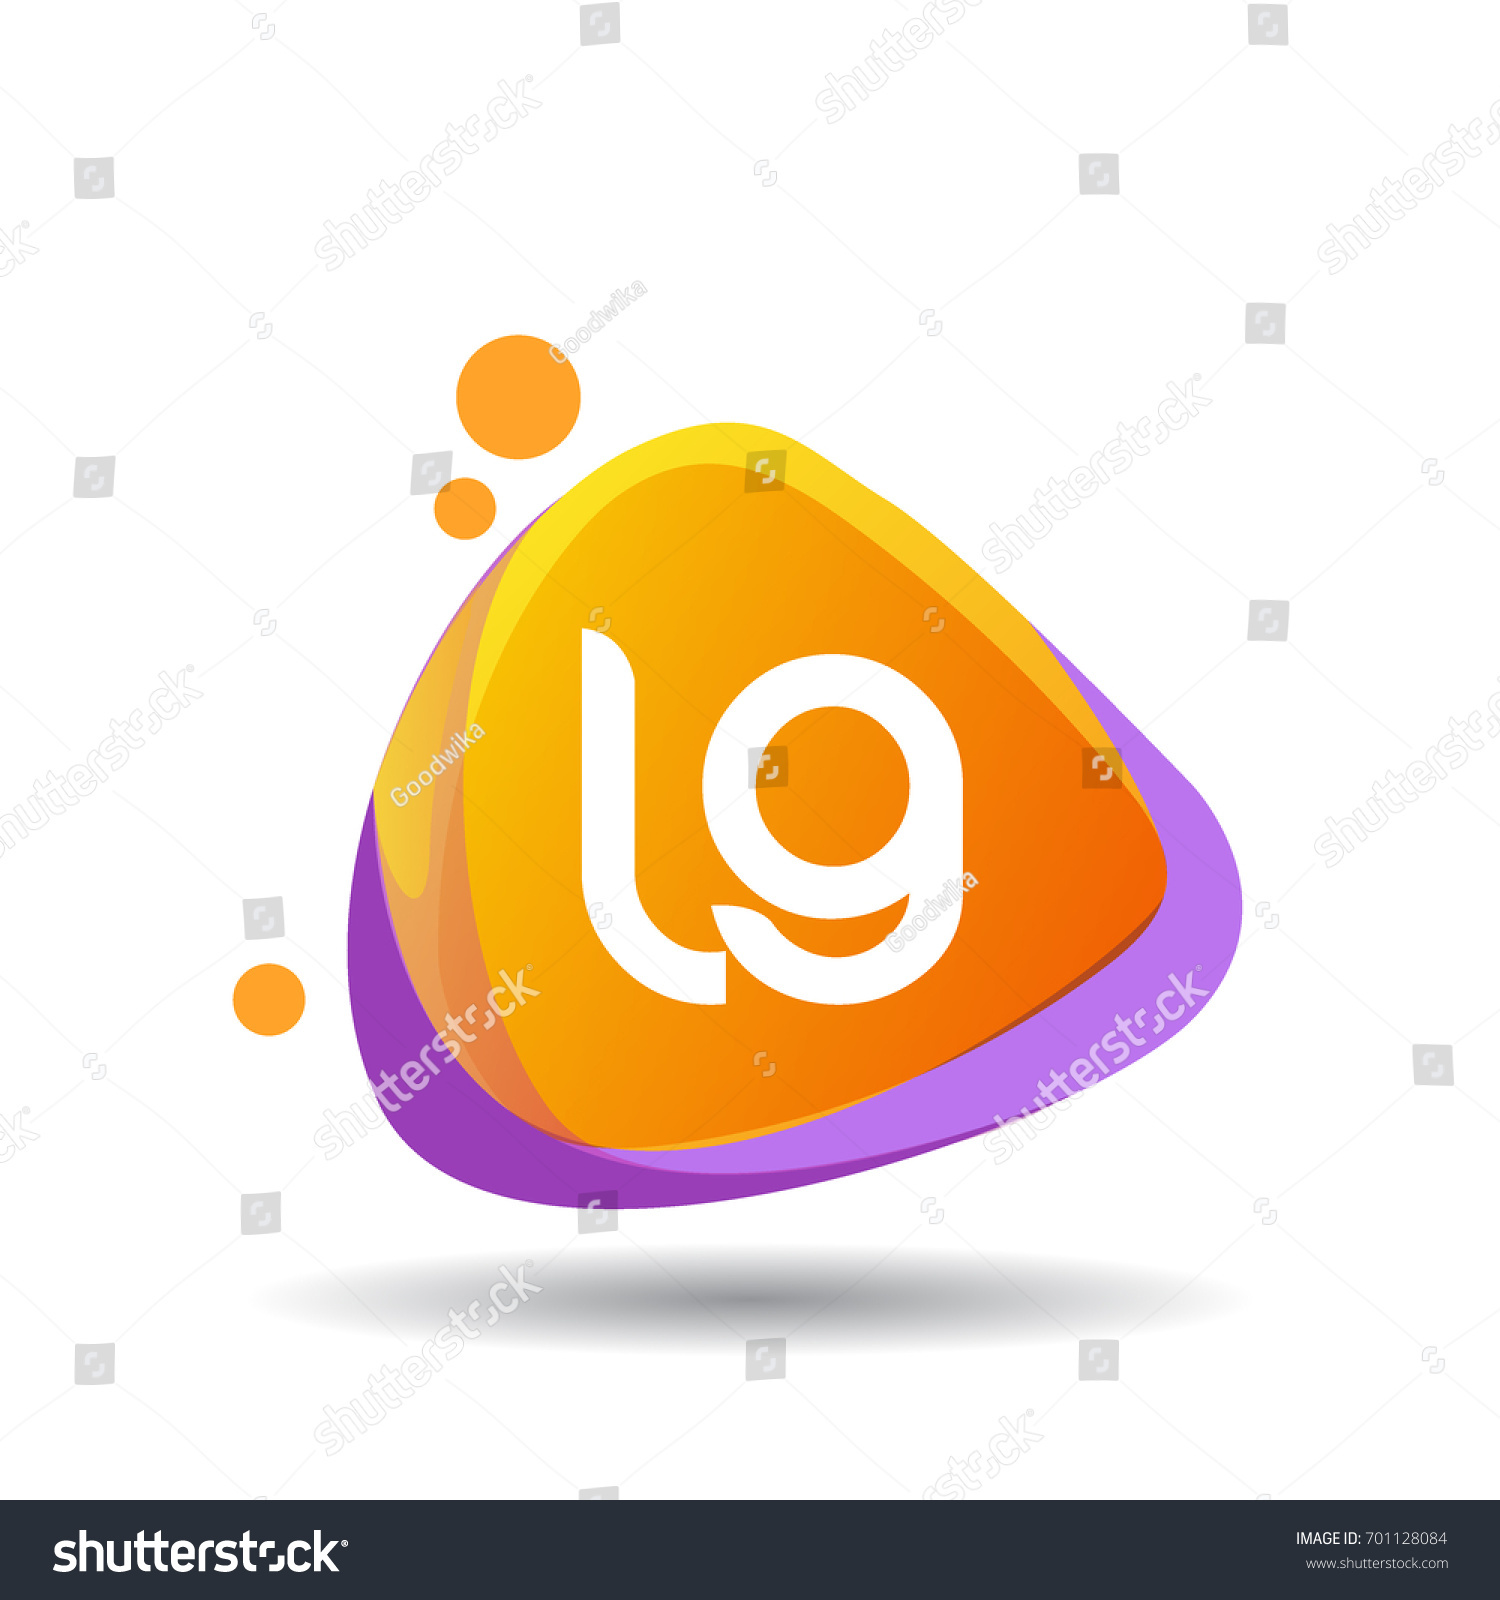 Letter Lg Logo Triangle Splash Colorful Stock Vector Royalty Free